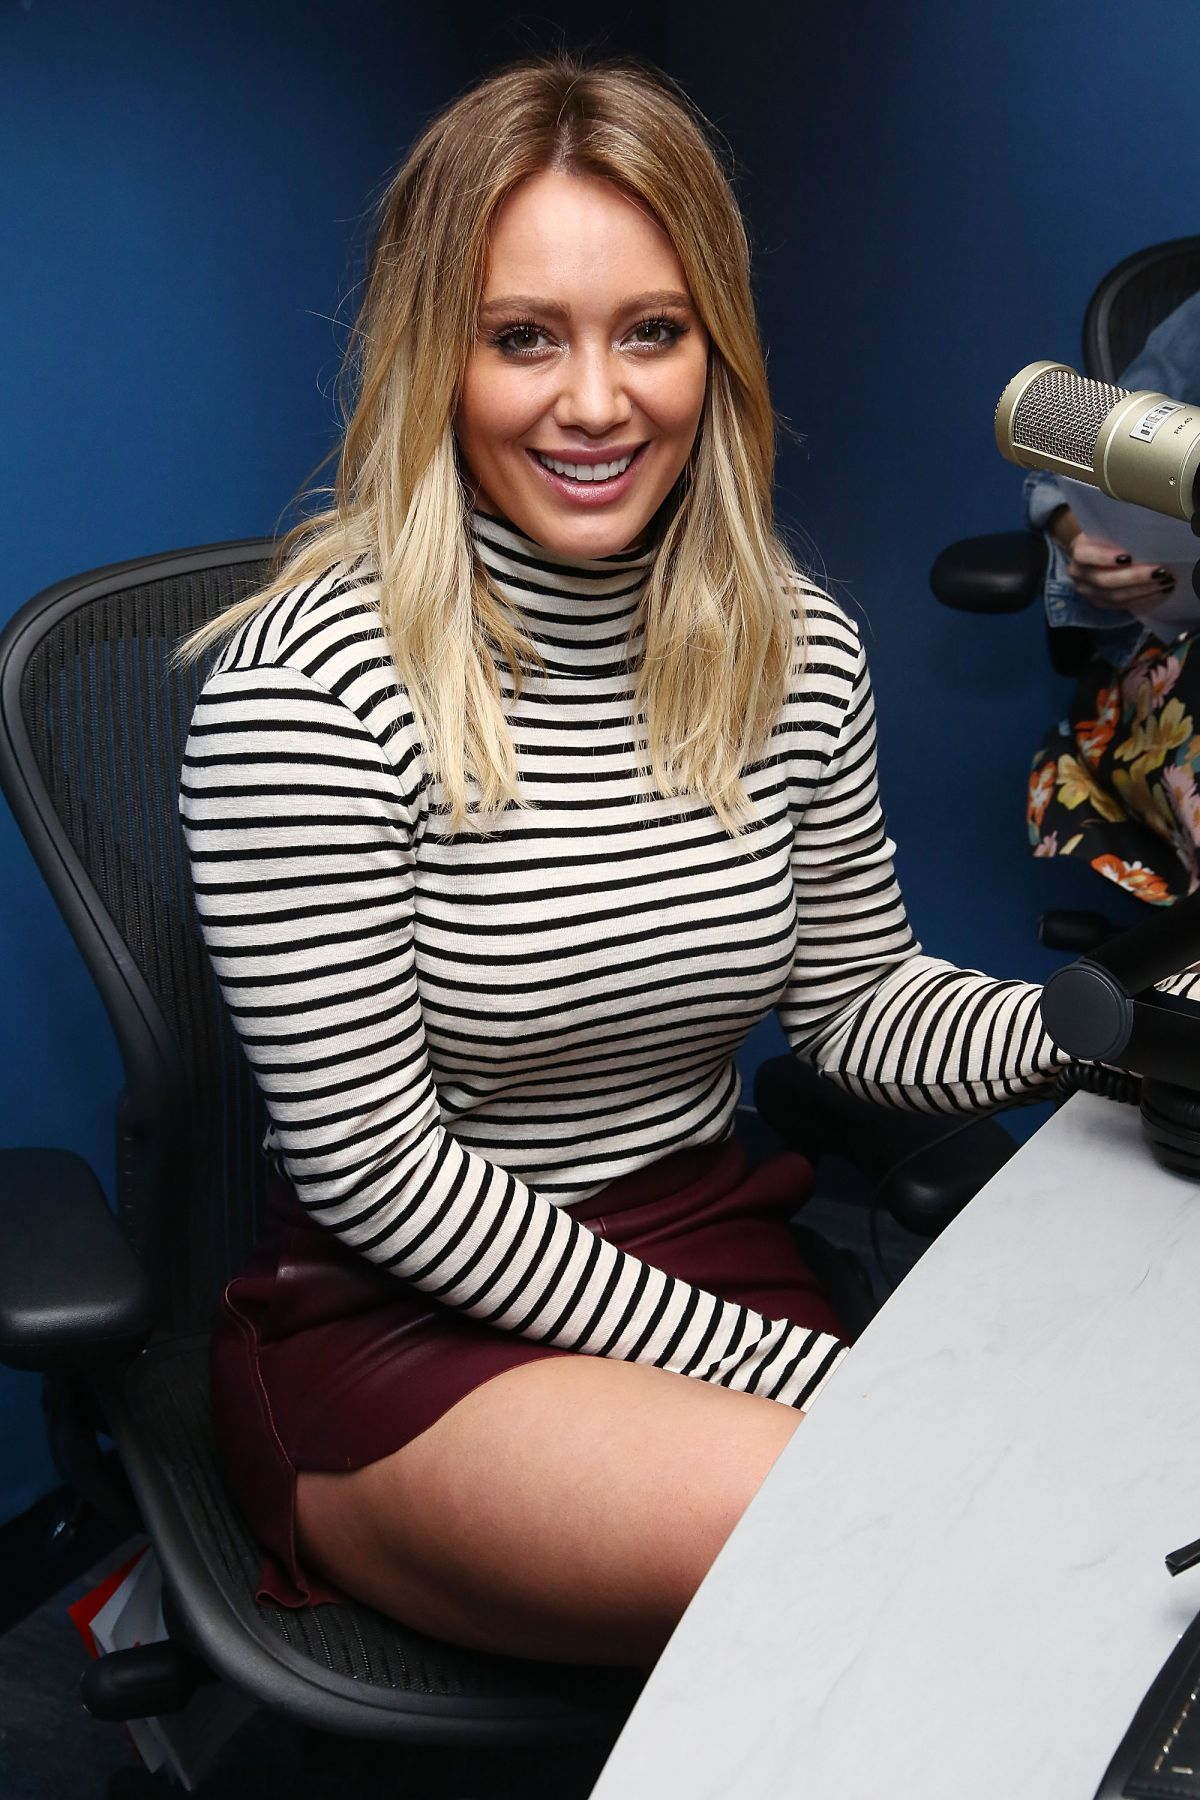 HILARY DUFF at SiriusXM Studios in New York 09/27/2016 ... Hilary Duff